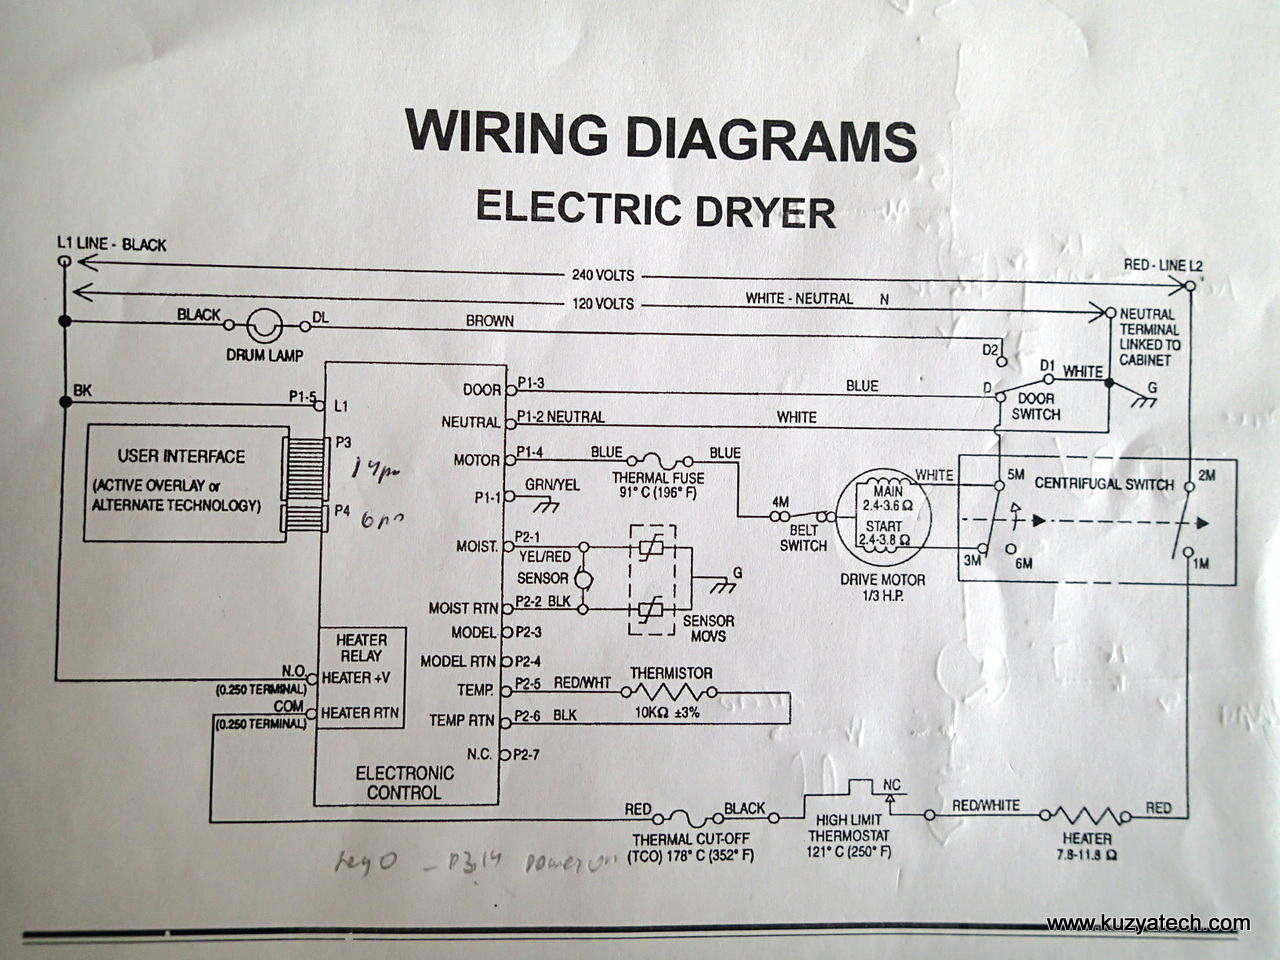 whirlpool duet schematic get free image about wiring diagram whirlpool dryer heating element wiring diagram Cadet Heater Wiring Diagram